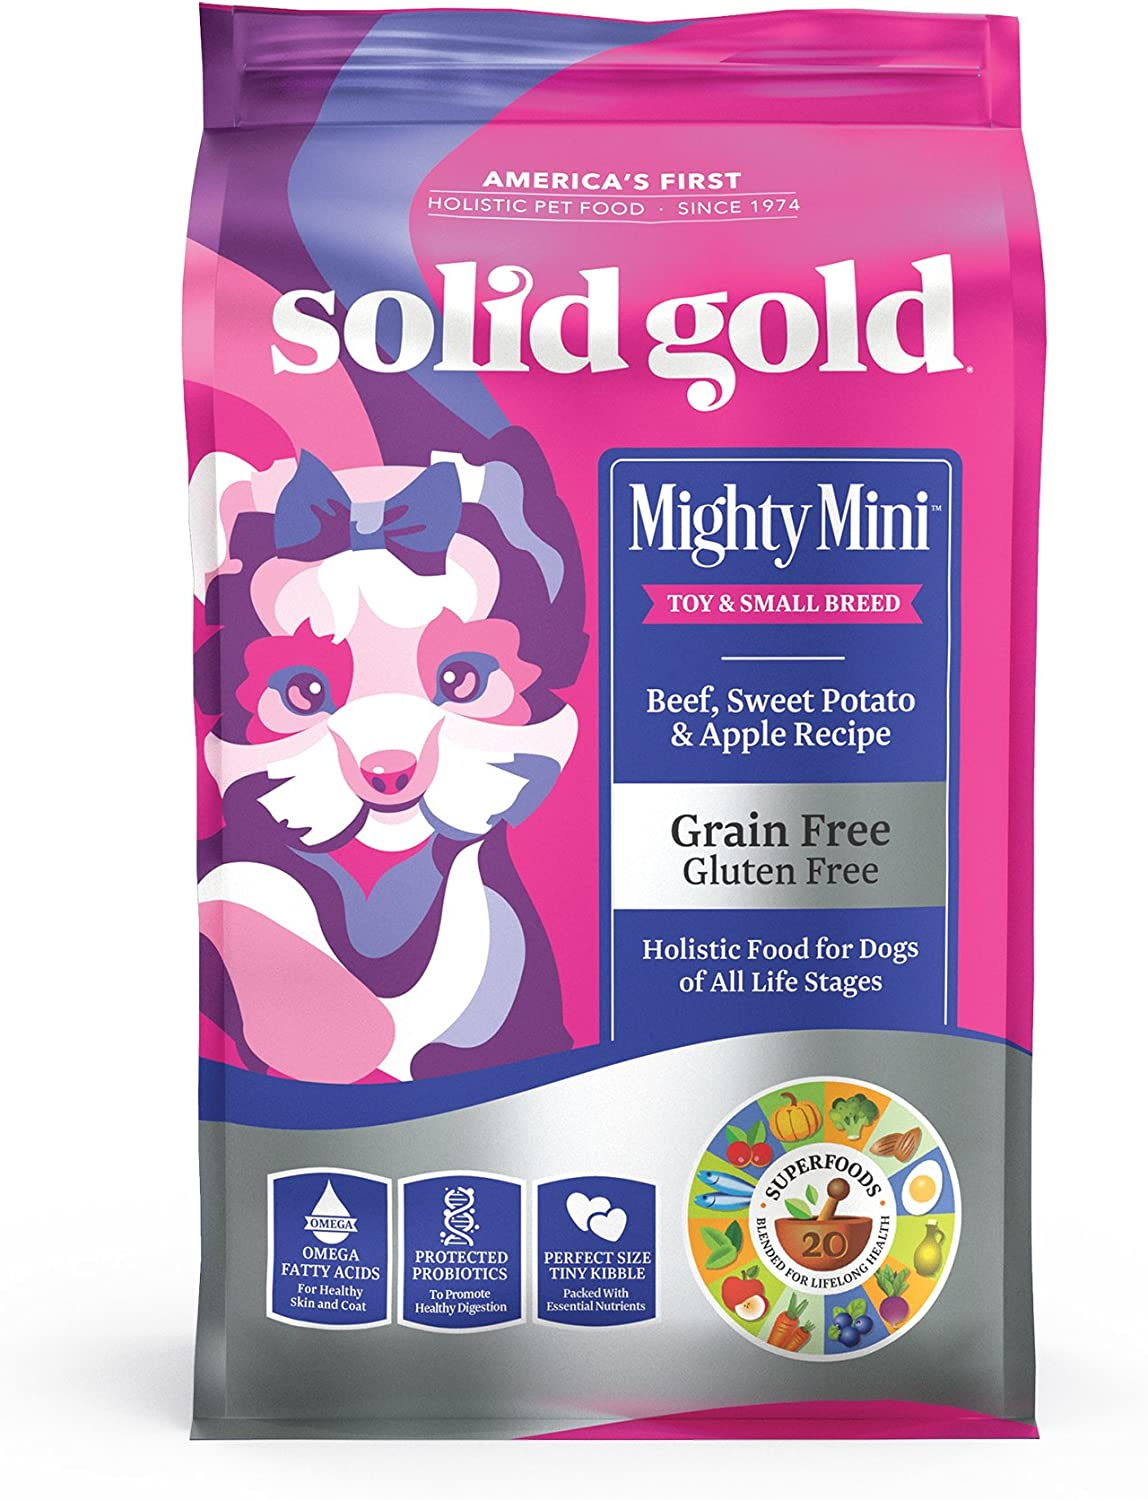 6. Solid Gold Mighty Mini Toy & Small Breed